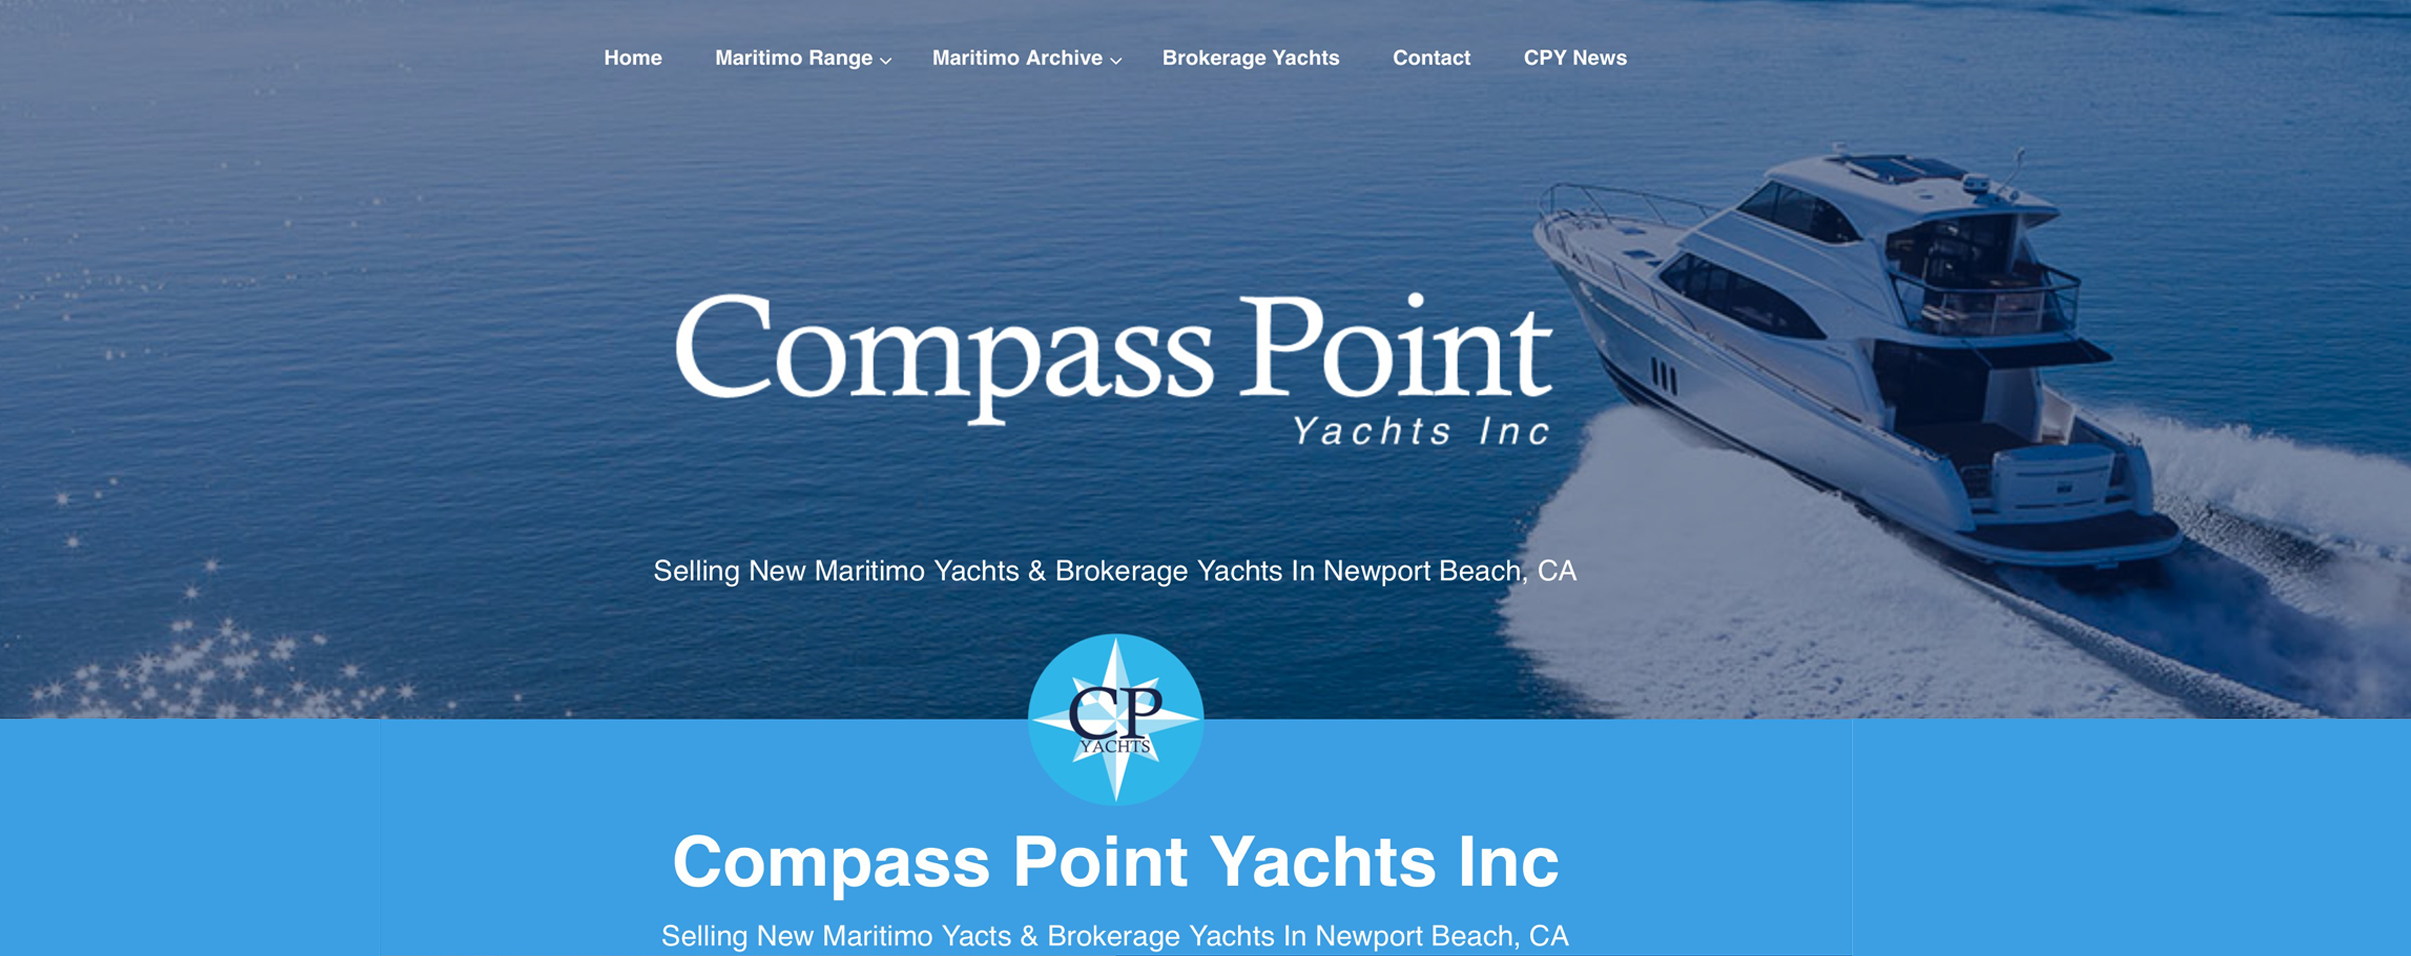 Compass Point Yachts Inc Banner